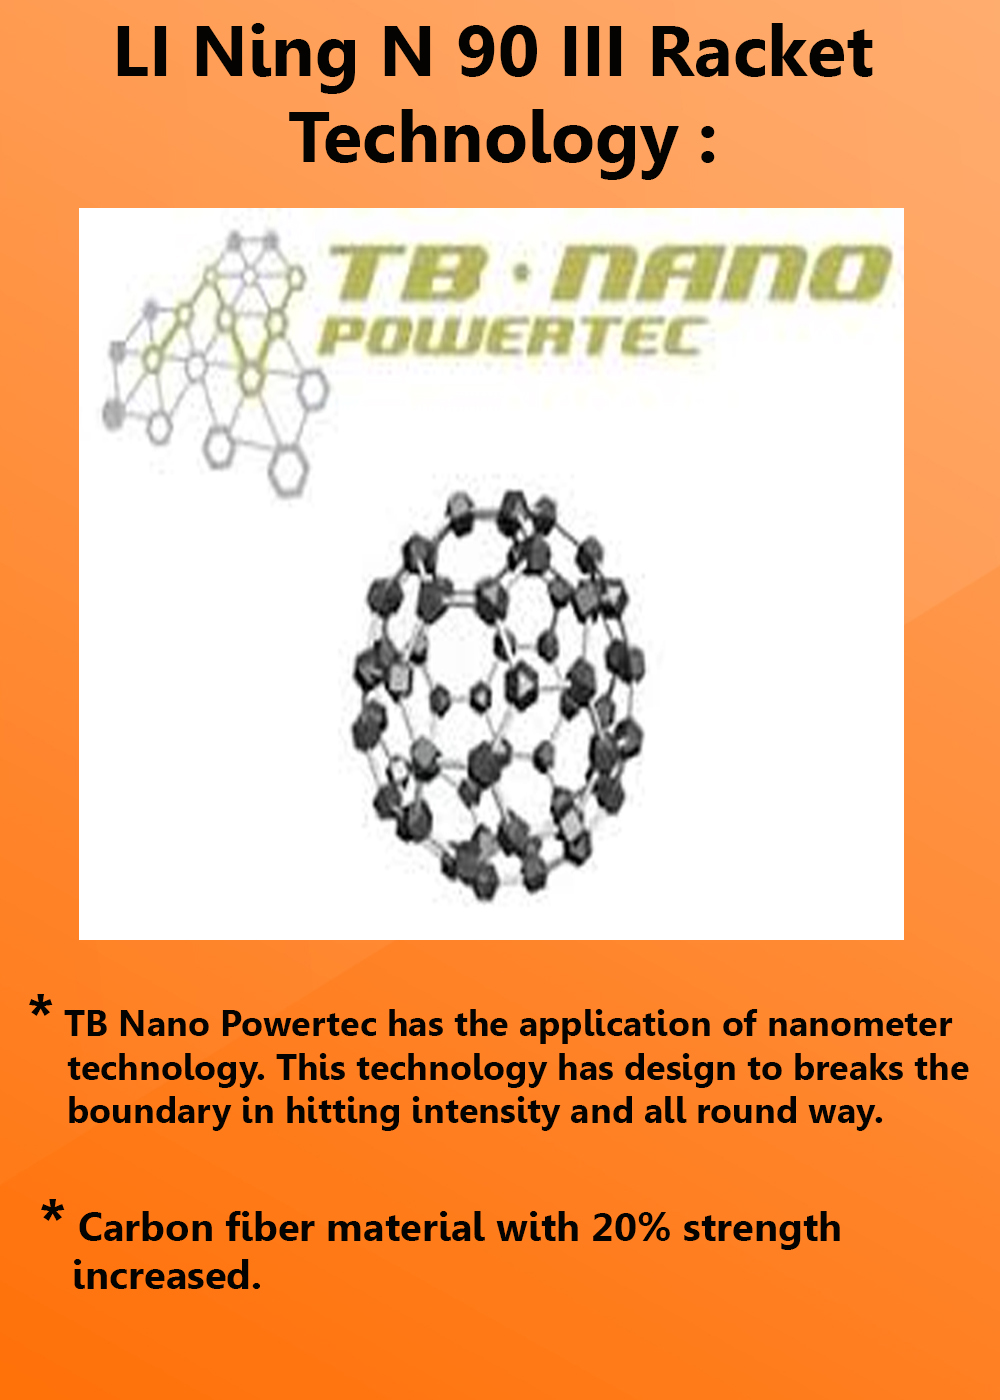 LINING TB Nano Powertec Technology_3